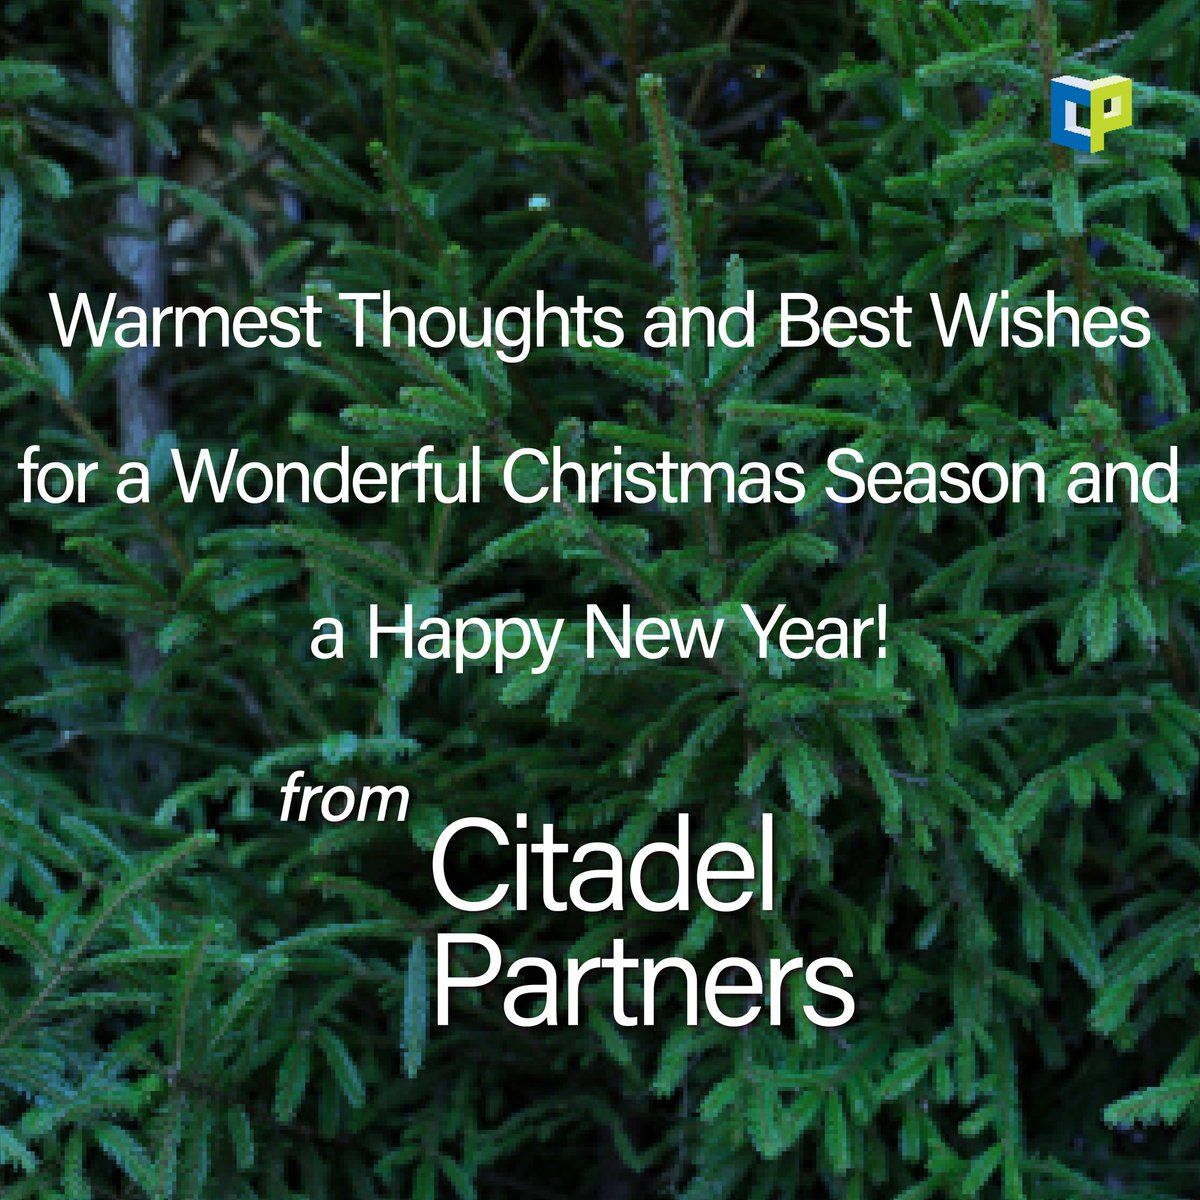 test Twitter Media - Warmest Thoughts and Best Wishes for a Wonderful Christmas Season and a Happy New Year!  #Christmas2020 #citadelpartners #DallasCommercialRealEstate #family https://t.co/Ph63lZcuFn